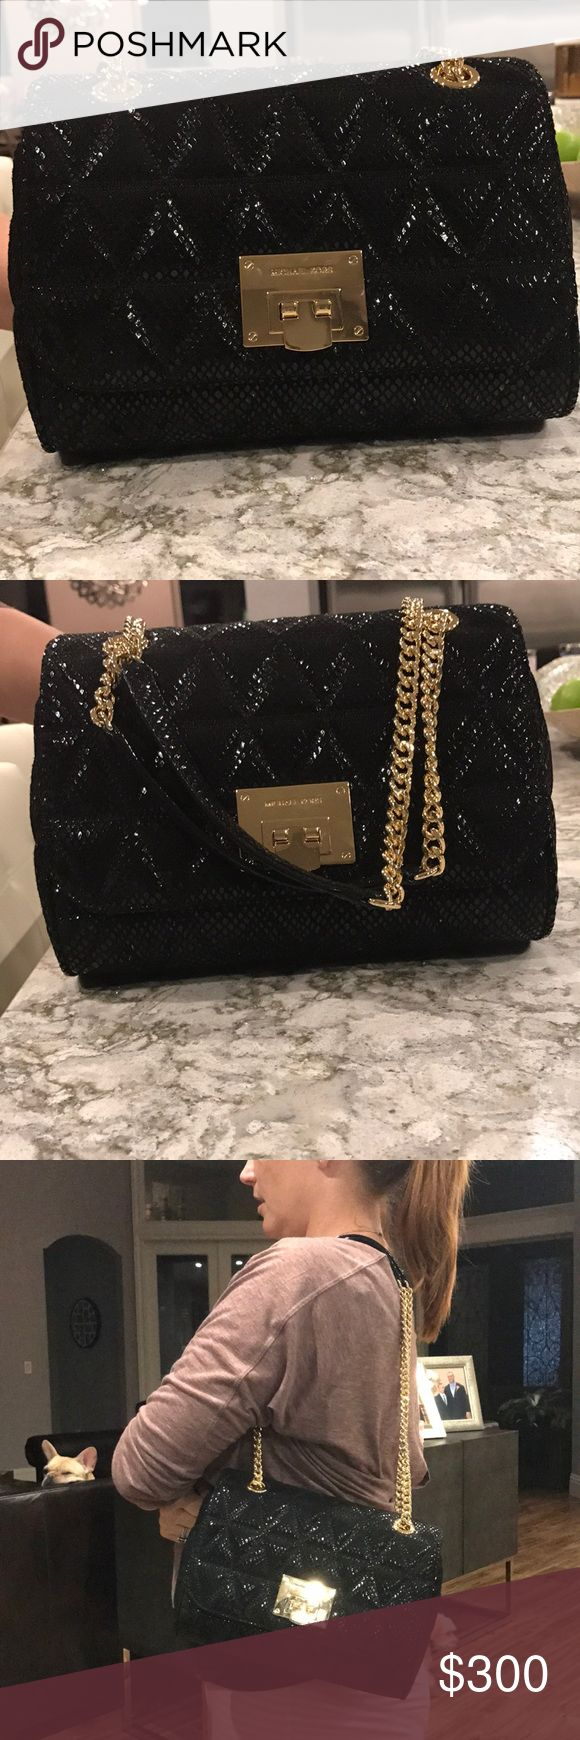 Michael Kors Purse NWT Black MK purse NWT. Dimensions: height is 7 inches, width is 9 1/2 inches, strap can hang 11 inches or 24 inches long Michael Kors Bags